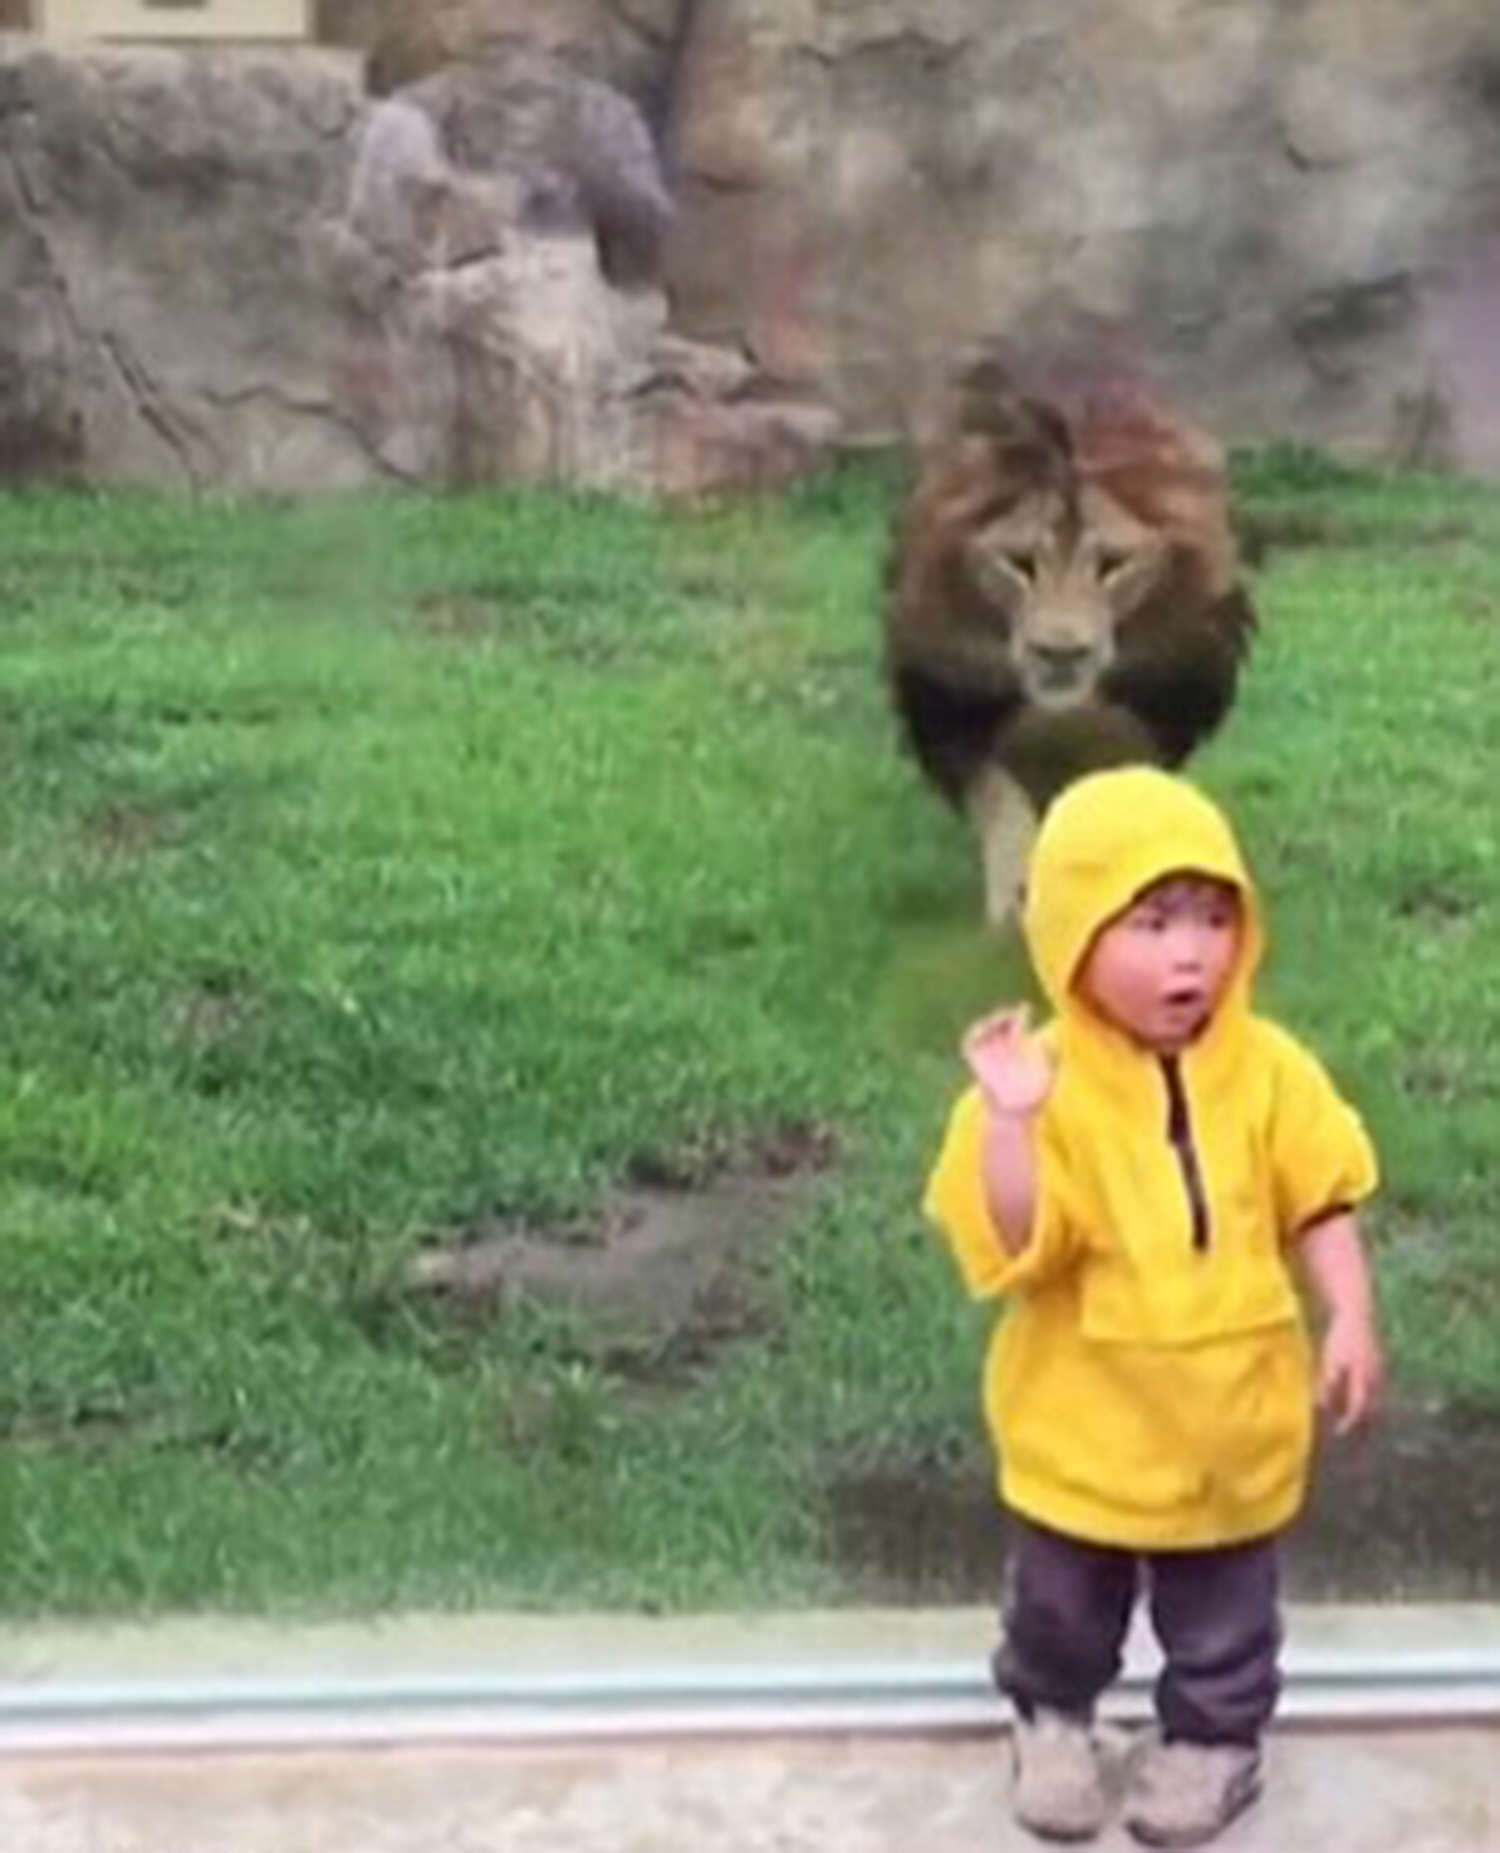 Terrifying Moment Lion Tries To Attack Toddler In Zoo lion 4 2911061a